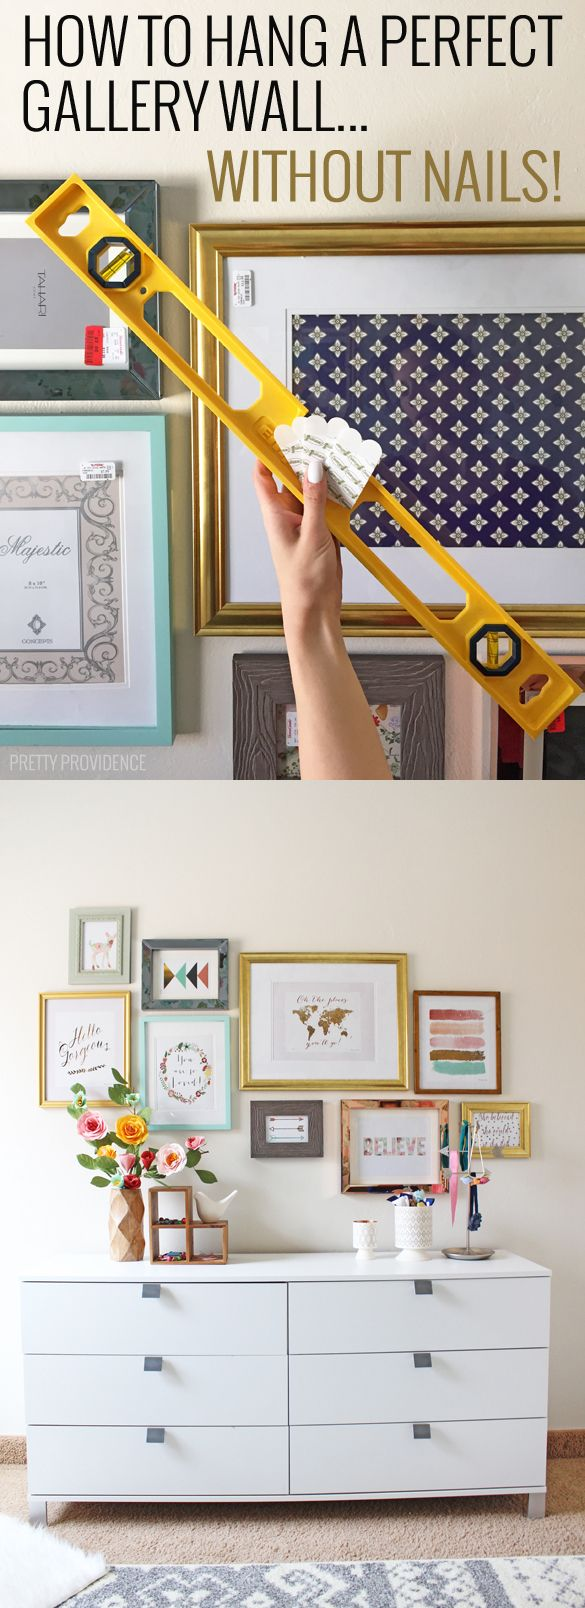 How To Hang A Perfect Gallery Wall Without Nails Do It